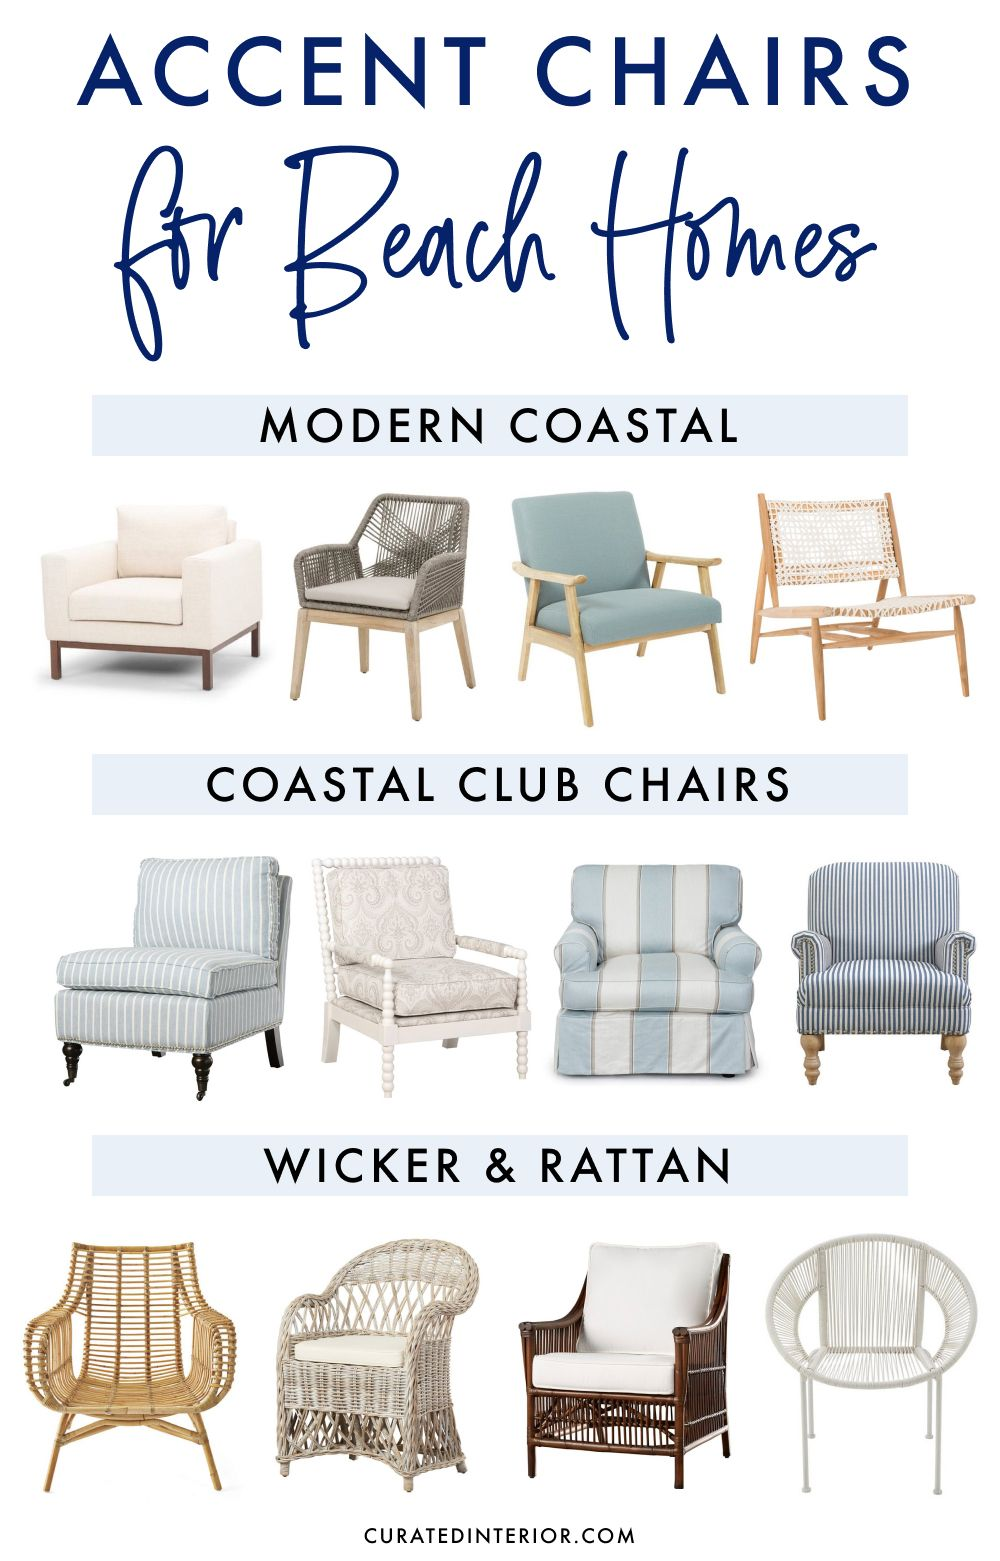 17 Accent Chairs for Beach Homes